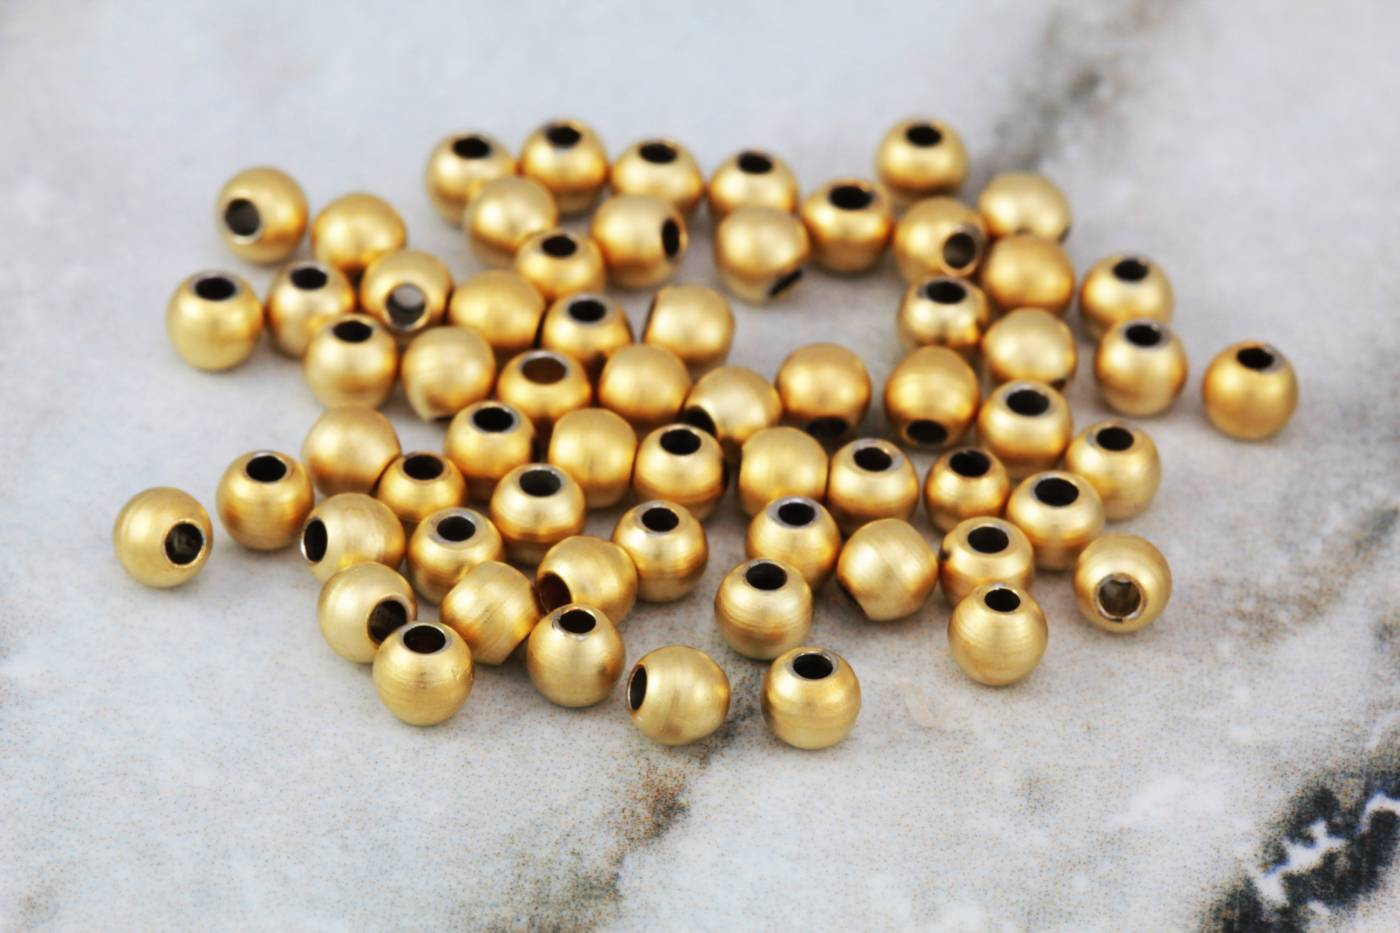 3mm-gold-plated-mini-ball-spacer-bead.jpg